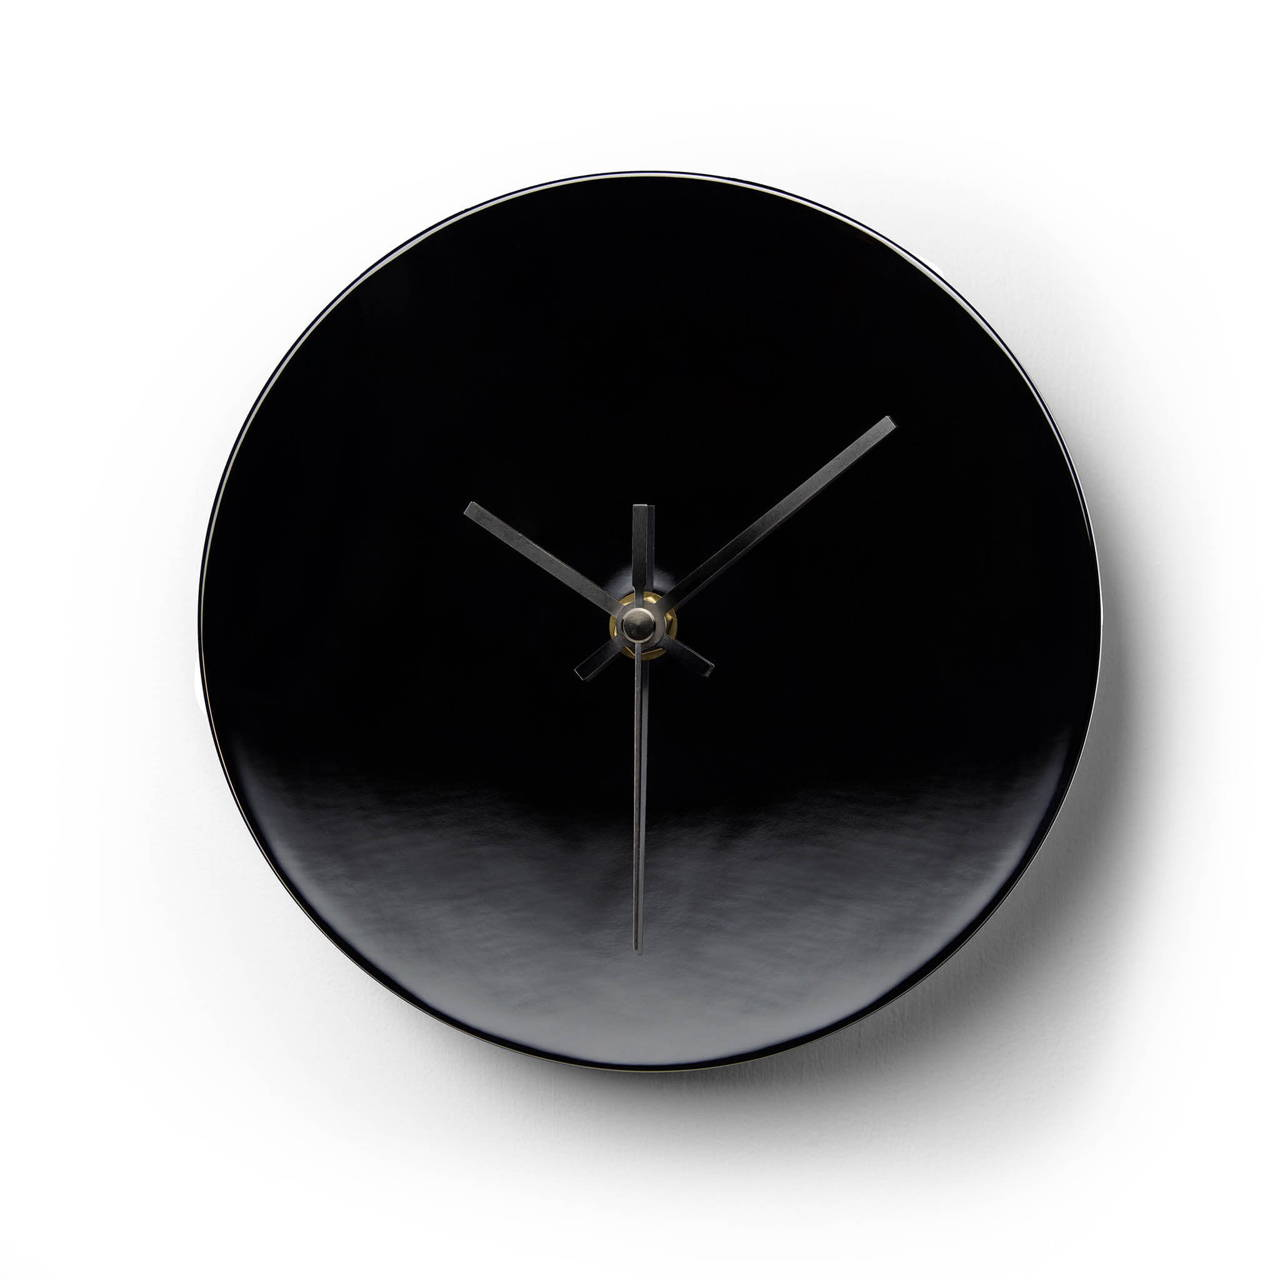 Clock in Black Nickel finish on wall